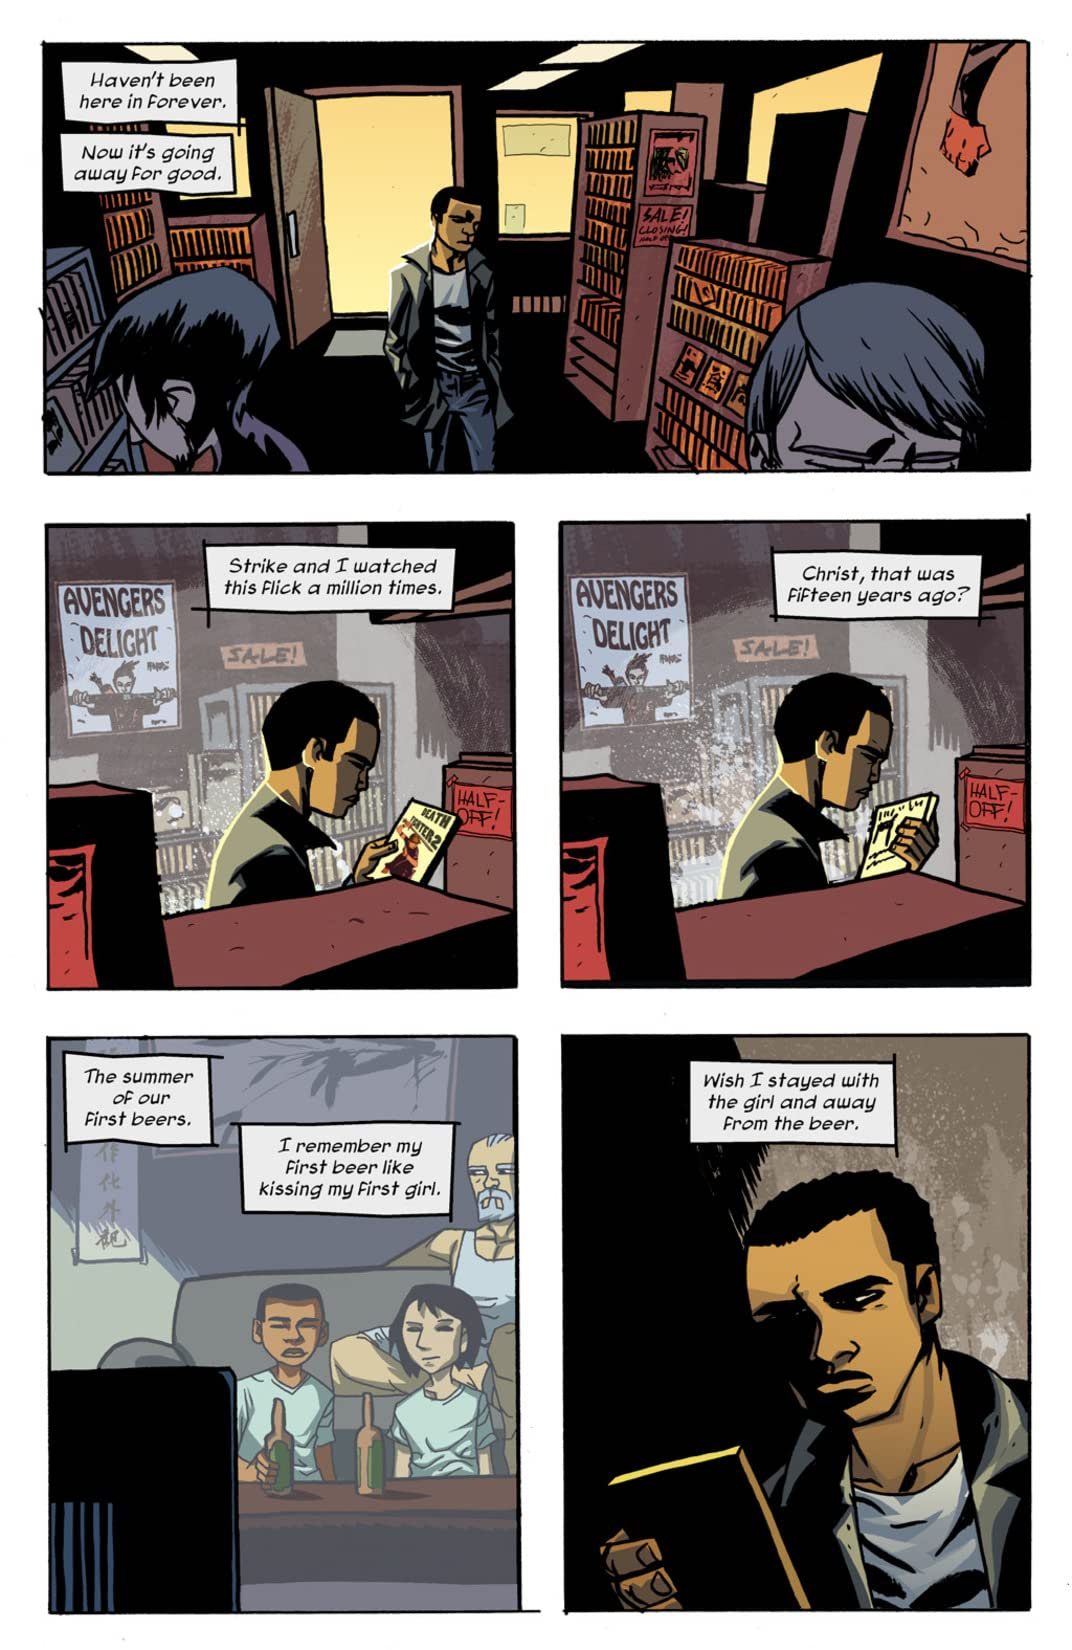 Michael Avon Oeming's The Victories #4